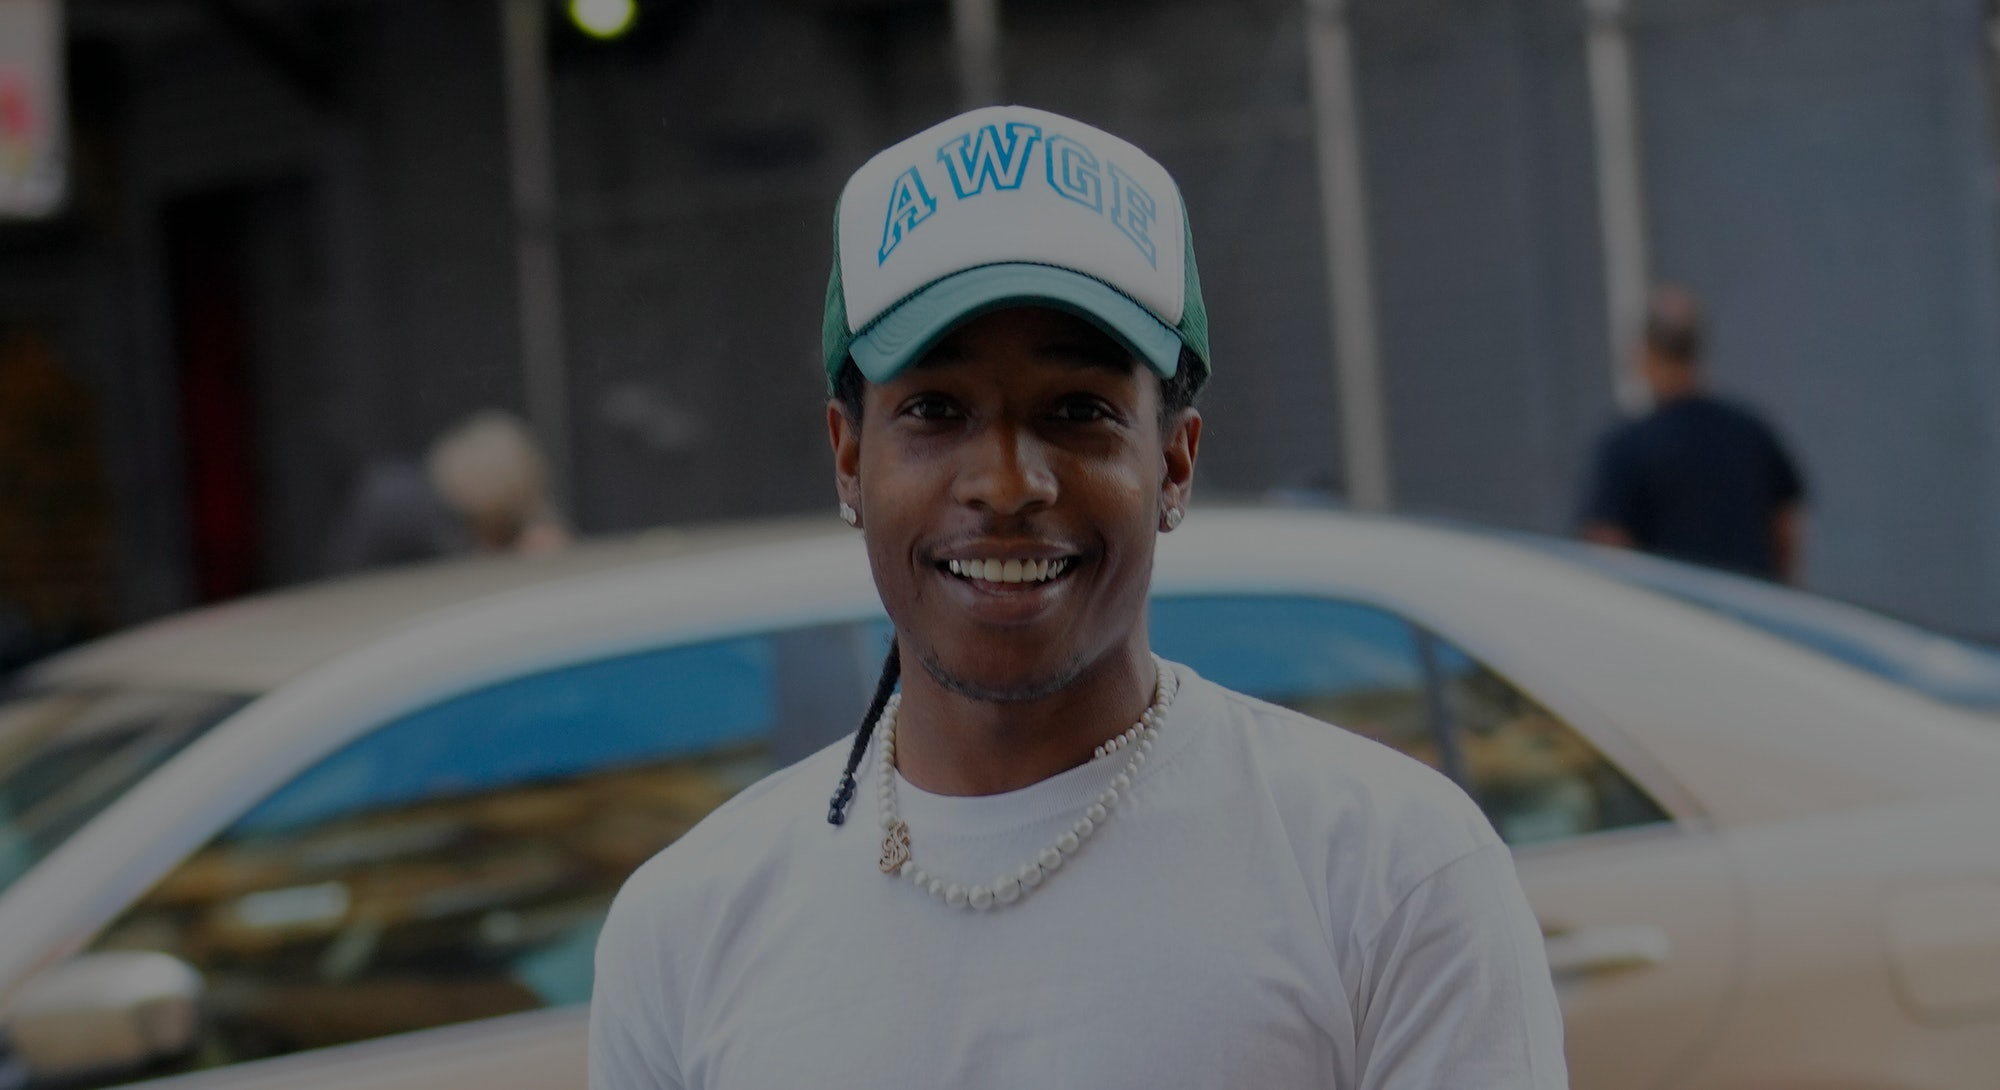 NEW YORK, NEW YORK - JUNE 30: A$AP Rocky is seen on June 30, 2021 in New York City. (Photo by Gotham...